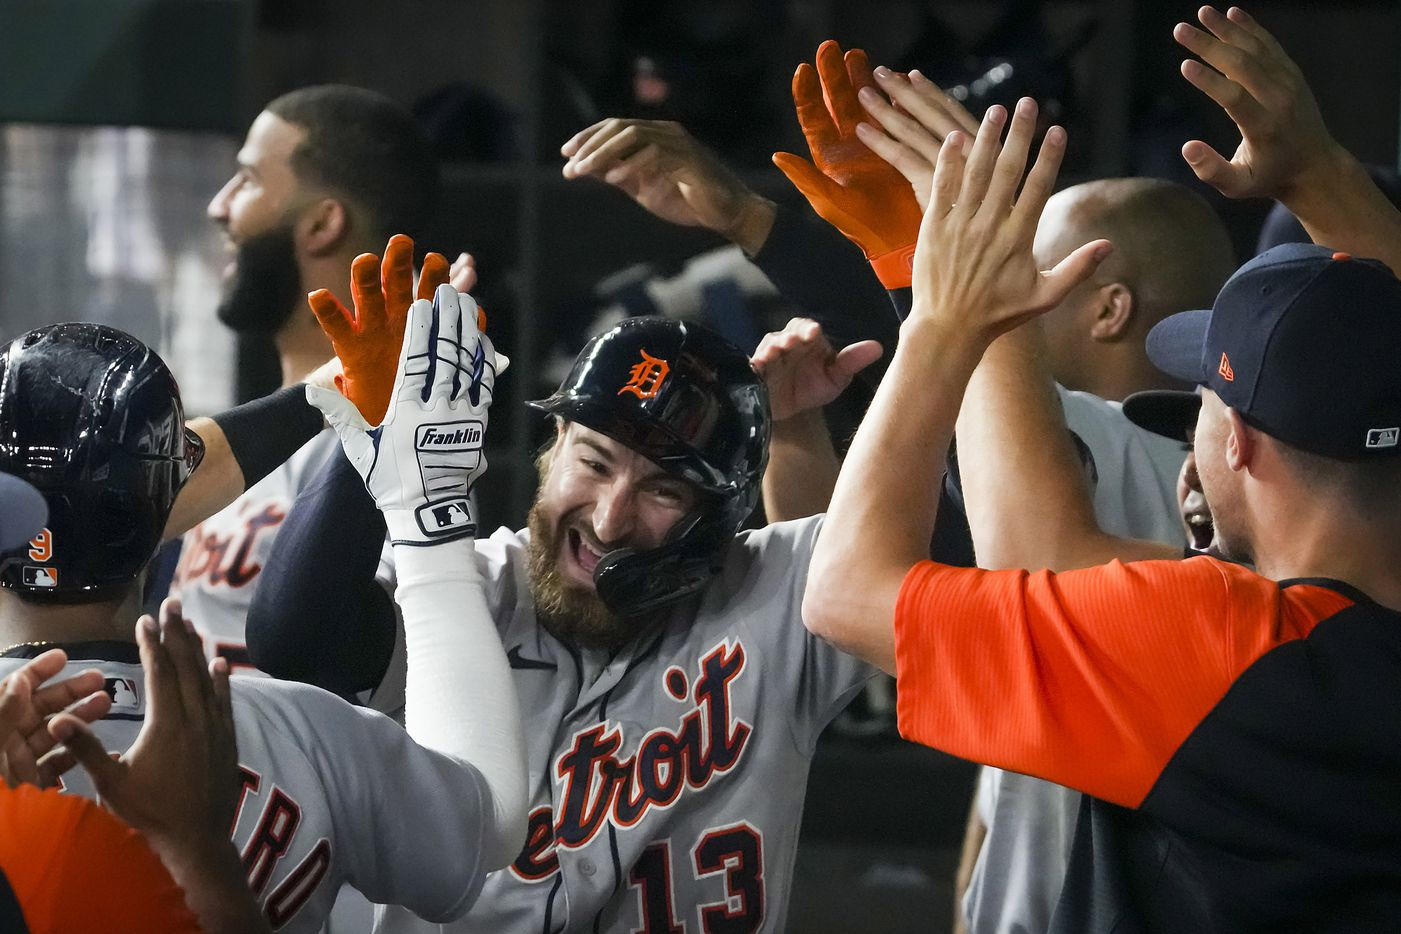 Detroit Tigers pinch hitter Eric Haase celebrates with teammates in the dugout after hitting a 3-run home run to tie the game during the seventh inning against the Texas Rangers at Globe Life Field on Tuesday, July 6, 2021.